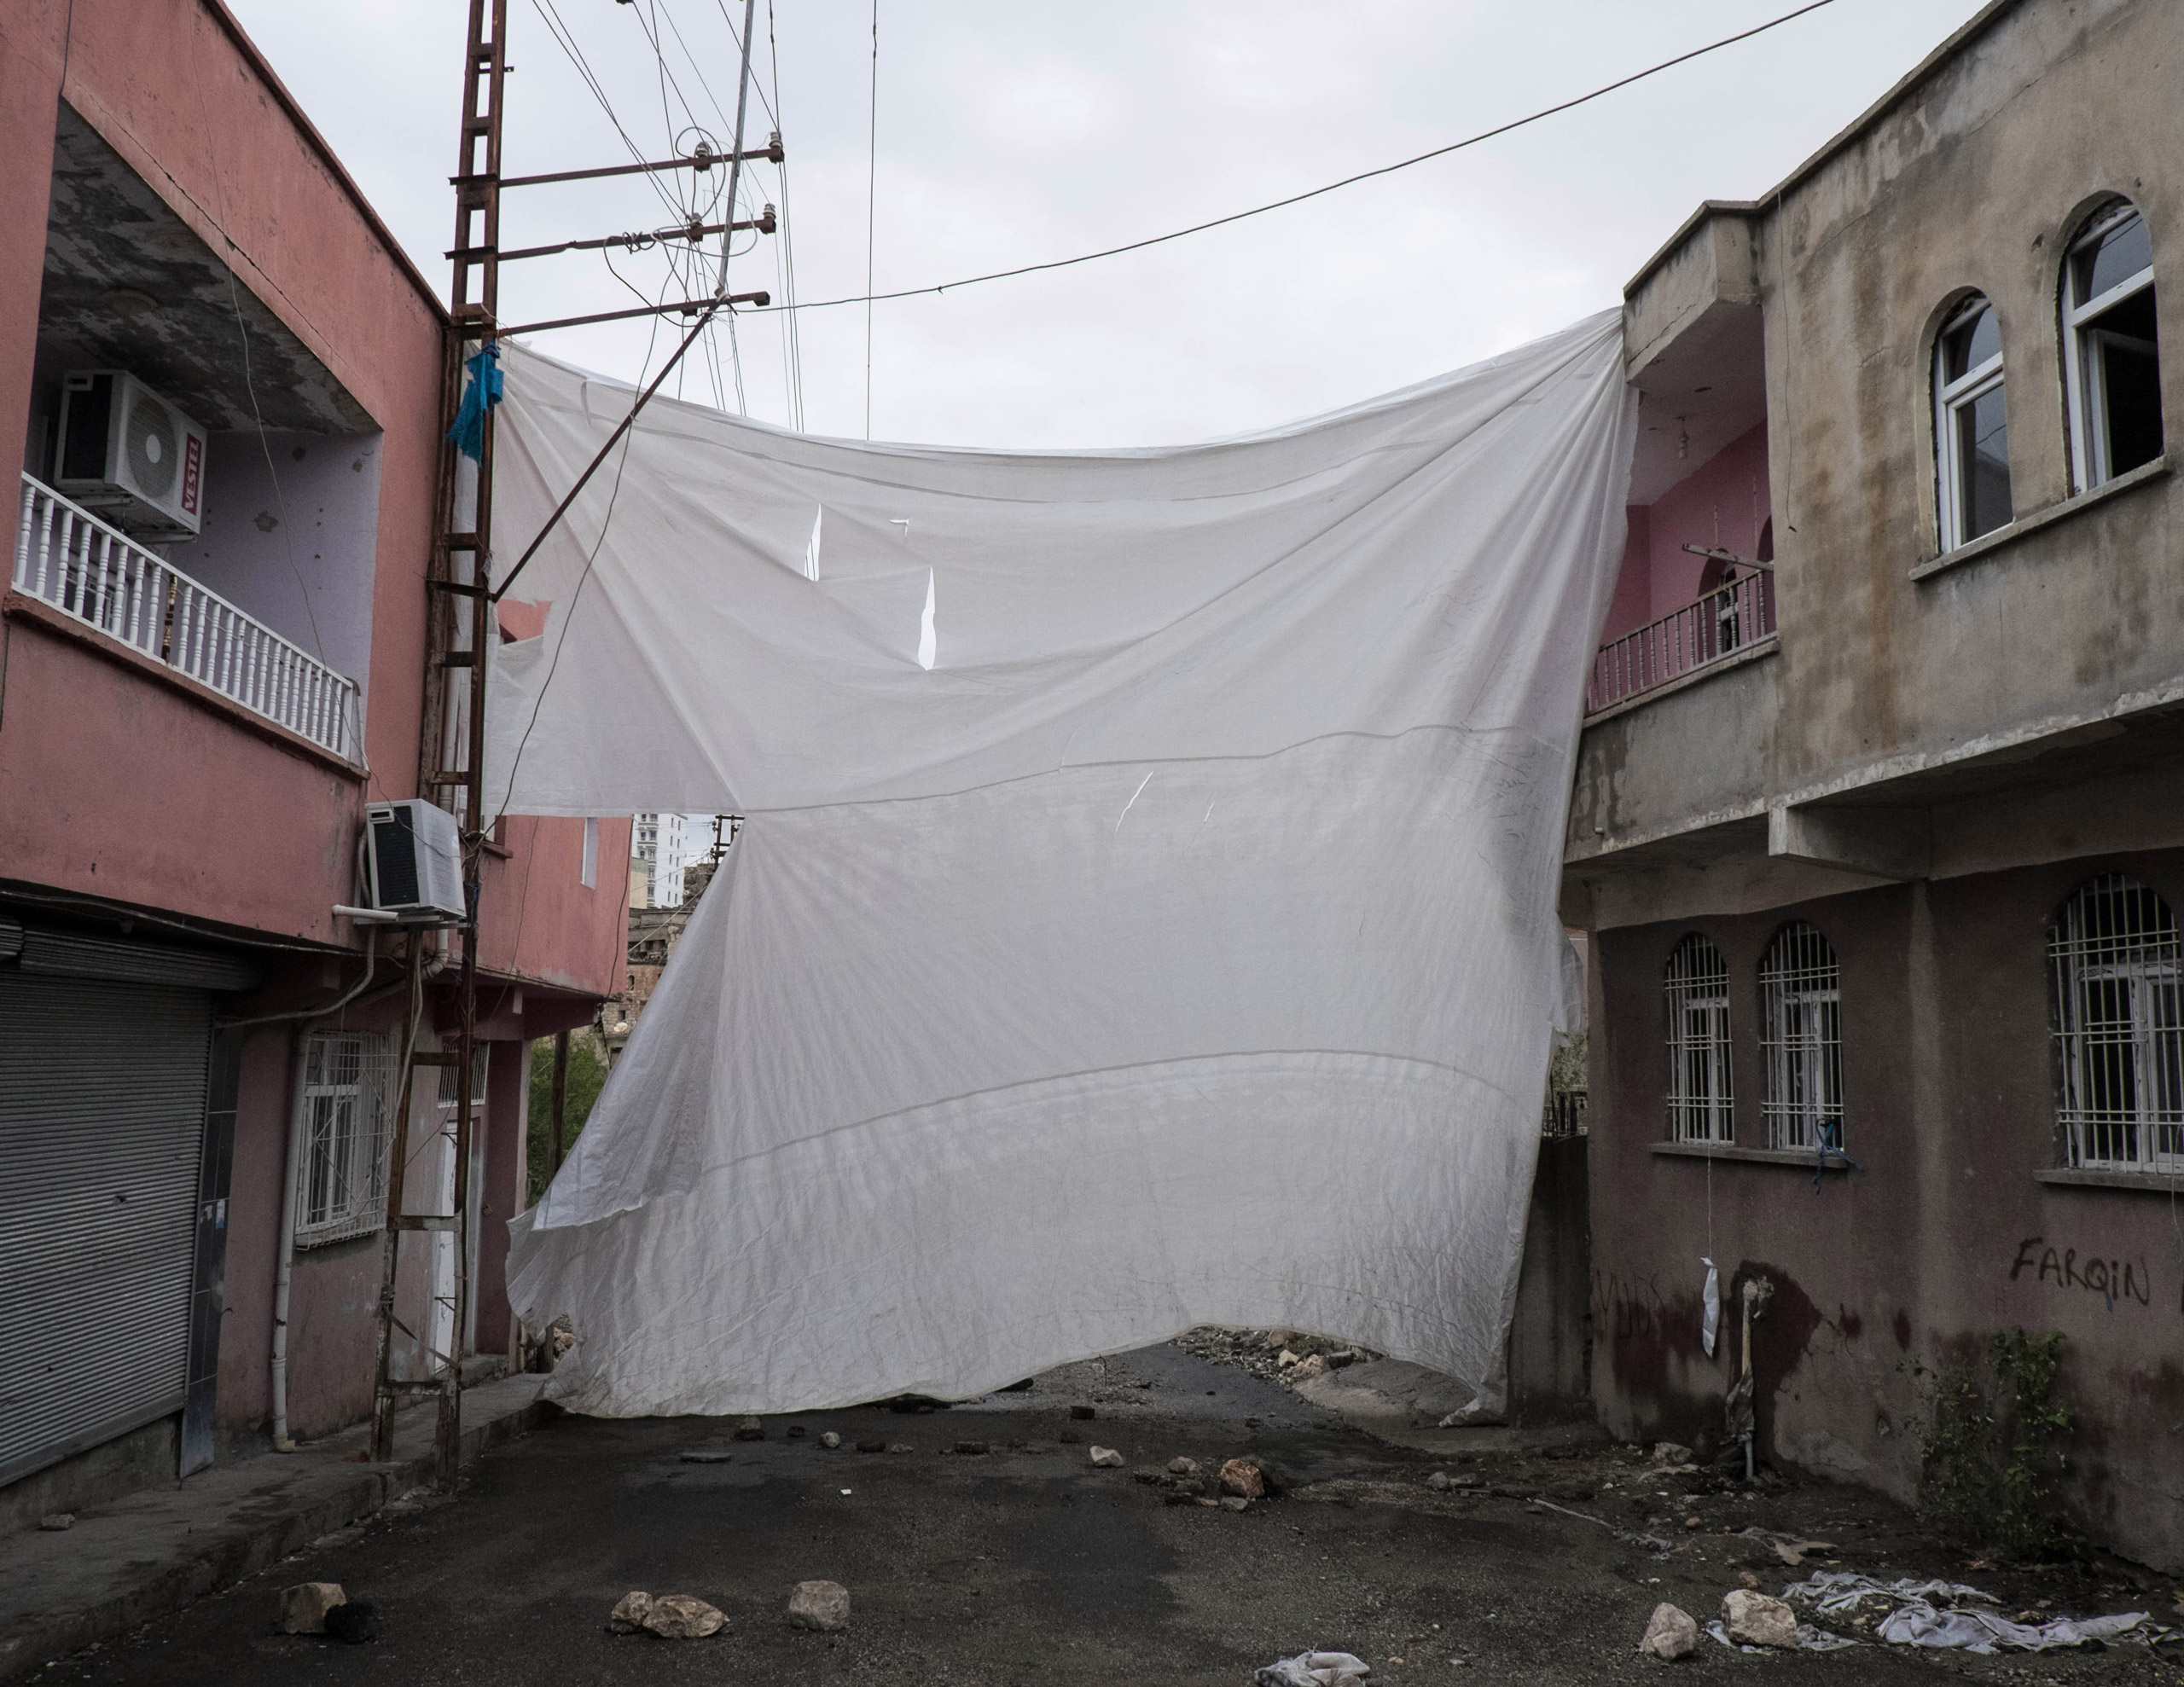 A veil covers an entrance in the Tekel neighborhood in Silvan, Turkey, on Oct. 27, 2015. Since July, the town of Silvan has been the theater of heavy clashes between Turkish military forces and Kurdish youth militias. A number of neighborhoods declared autonomy and self-rule;  groups of young Kurds under the acronyms of HPG (People Defense Union) and YDGH (Patriotic Revolutionary Youth Movement) have taken up arms and raised barricades to prevent the advances of the Turkish forces.